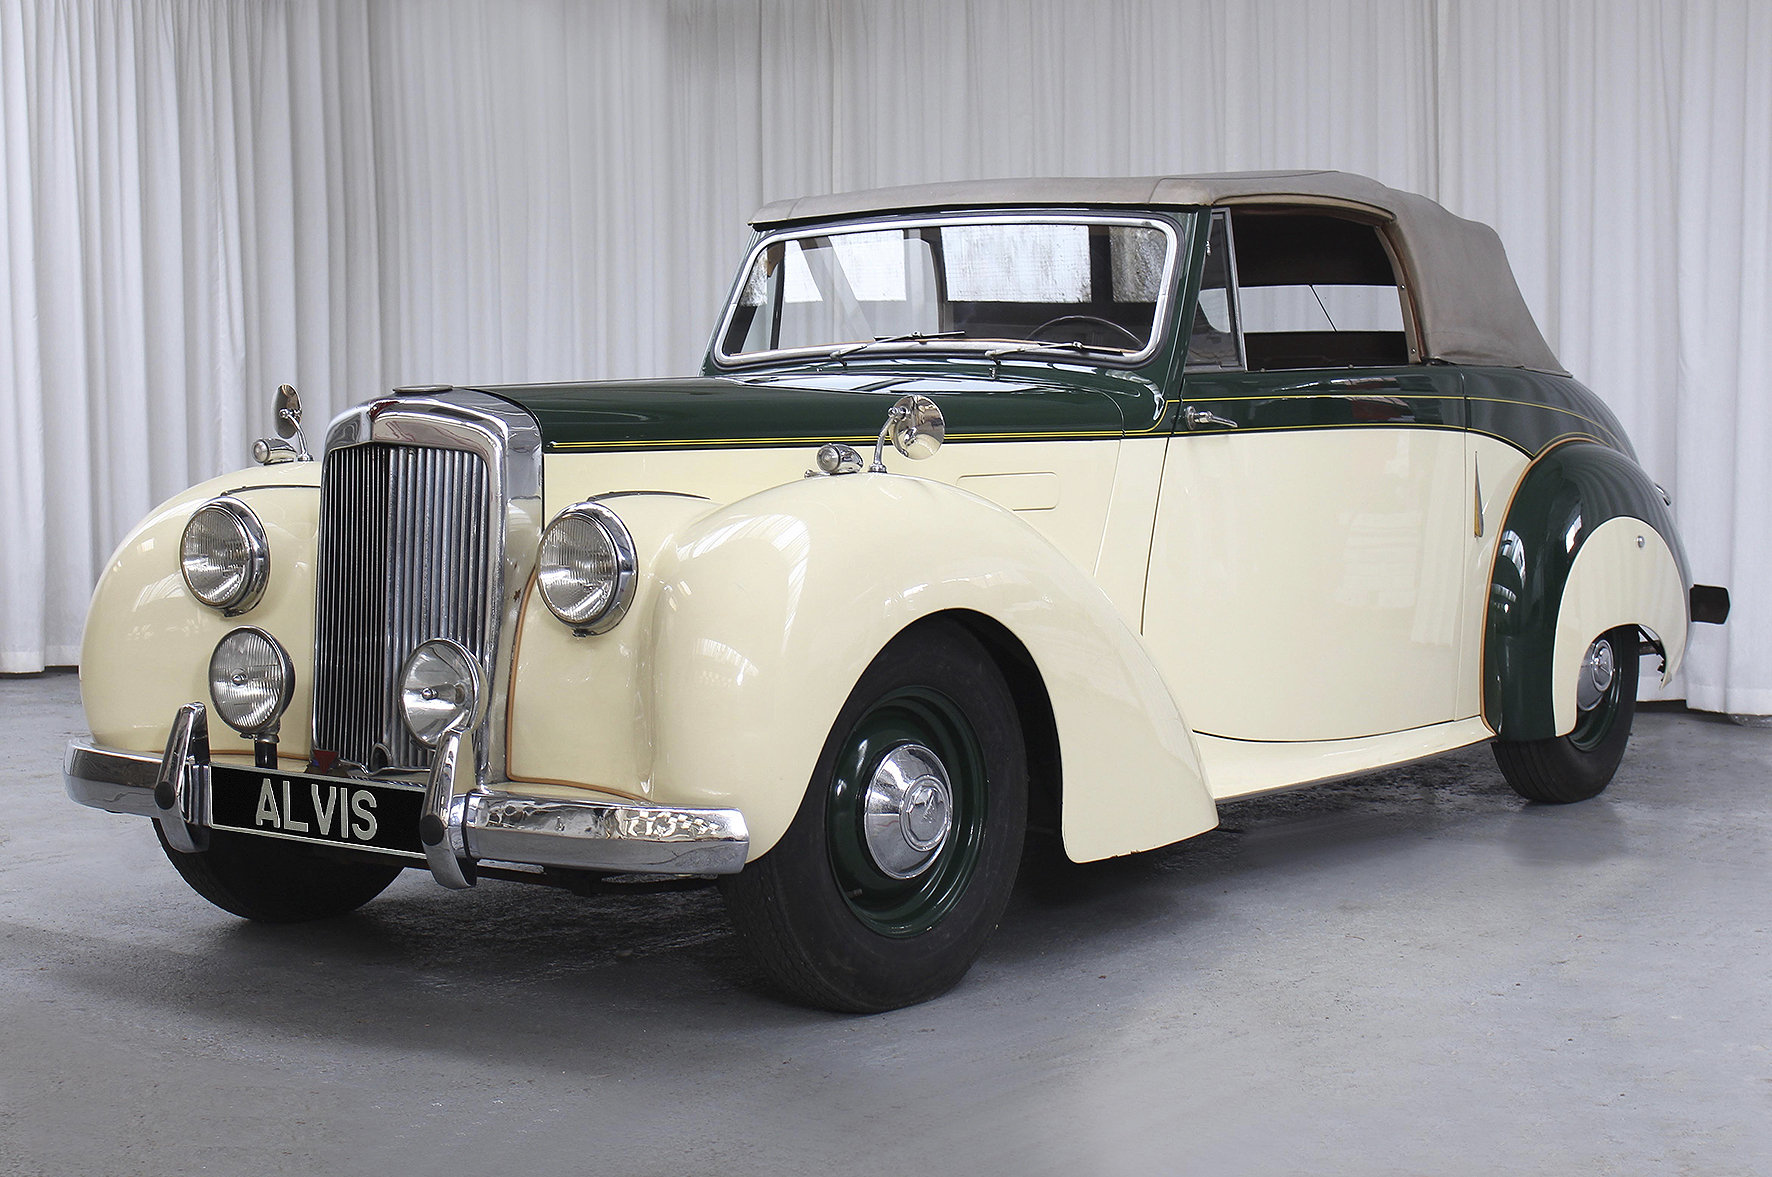 1952 TA21 DHC by Tickford in LHD For Sale (picture 2 of 6)